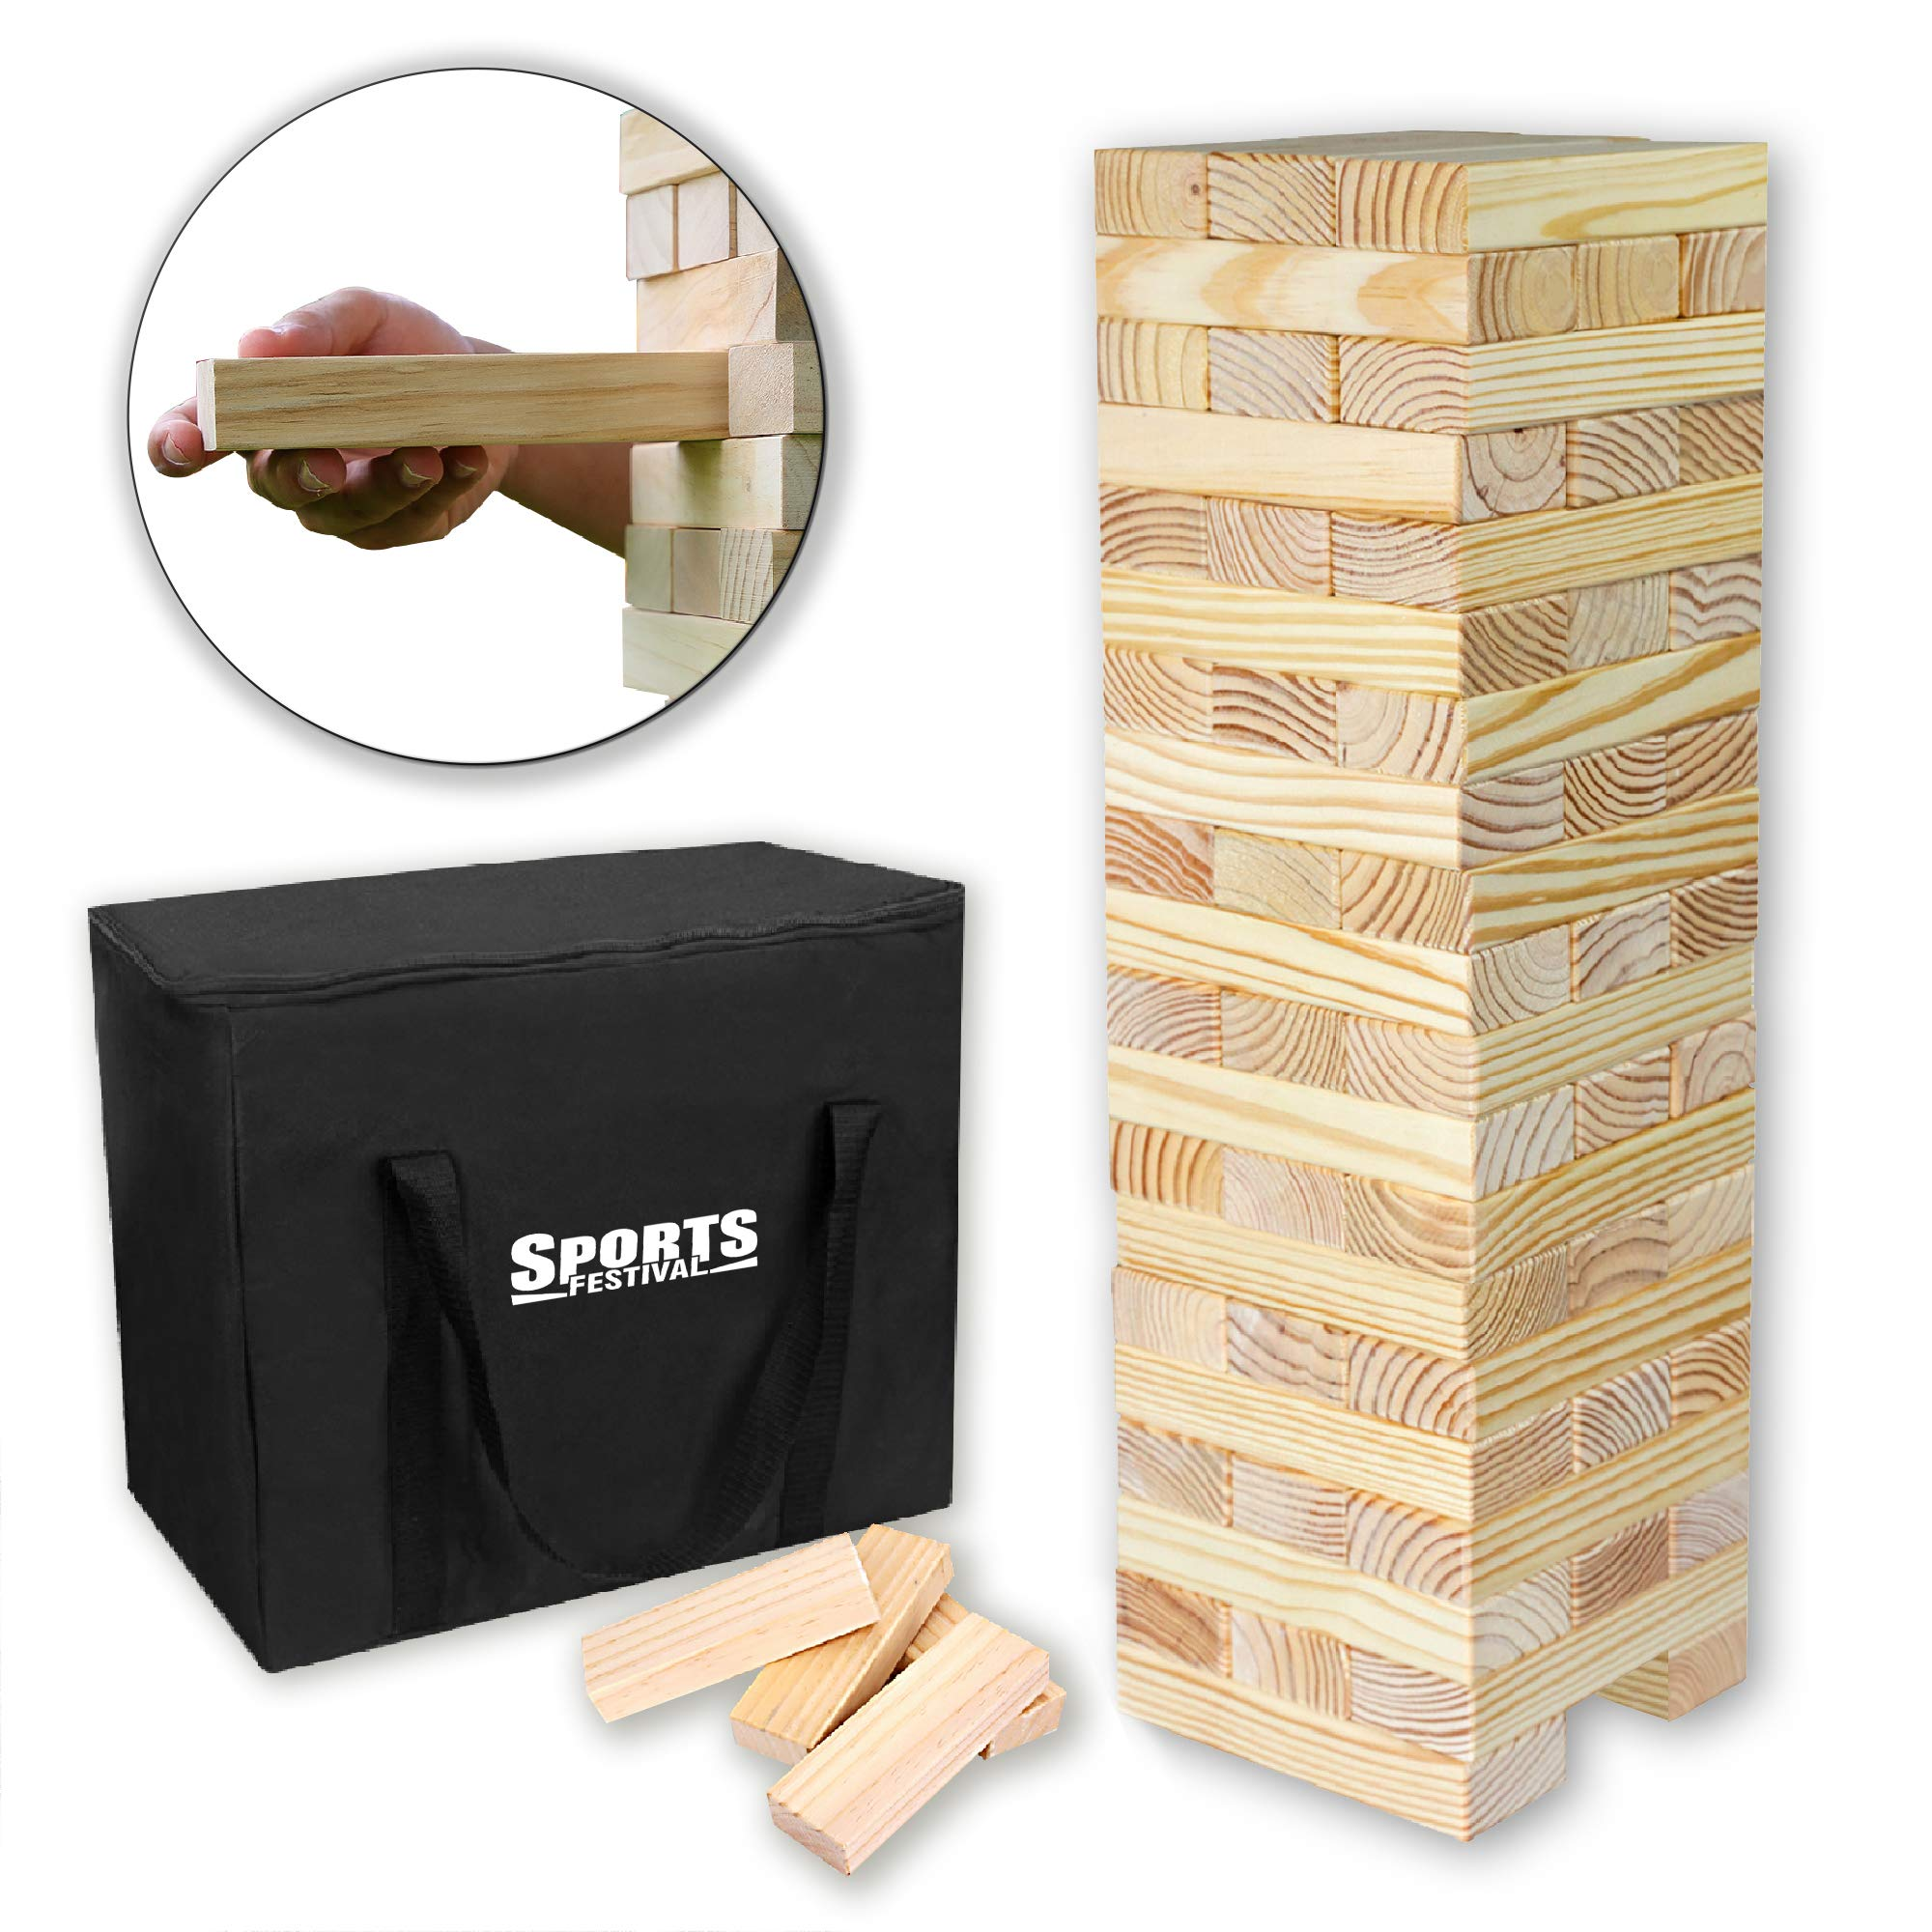 Sports Festival Giant Wooden Tumbling Timbers with Storage Bag, Hardwood Block Stacking Game for Yard Games by Sports Festival